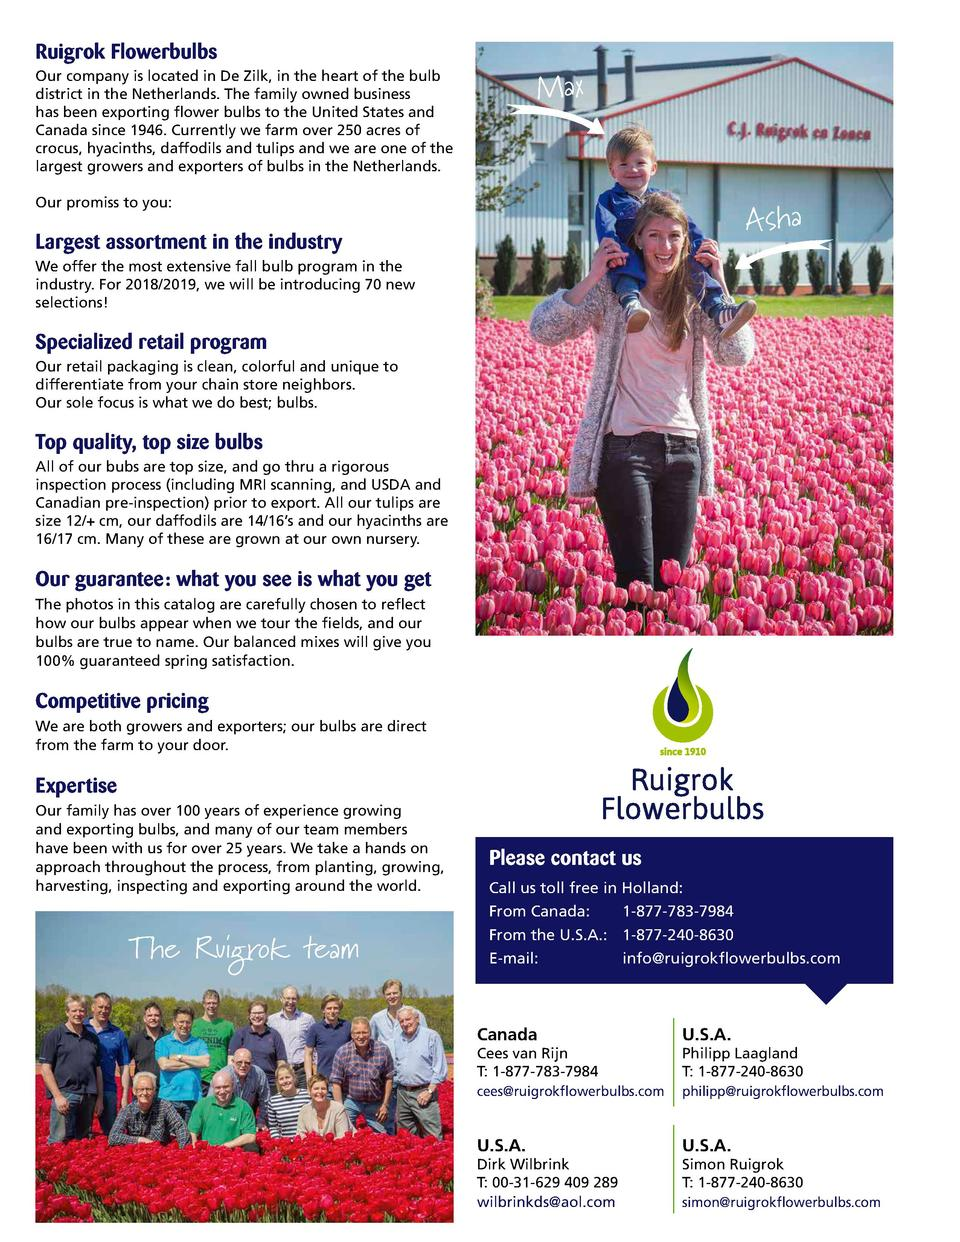 Ruigrok Flowerbulbs Our company is located in De Zilk, in the heart of the bulb district in the Netherlands. The family ow...